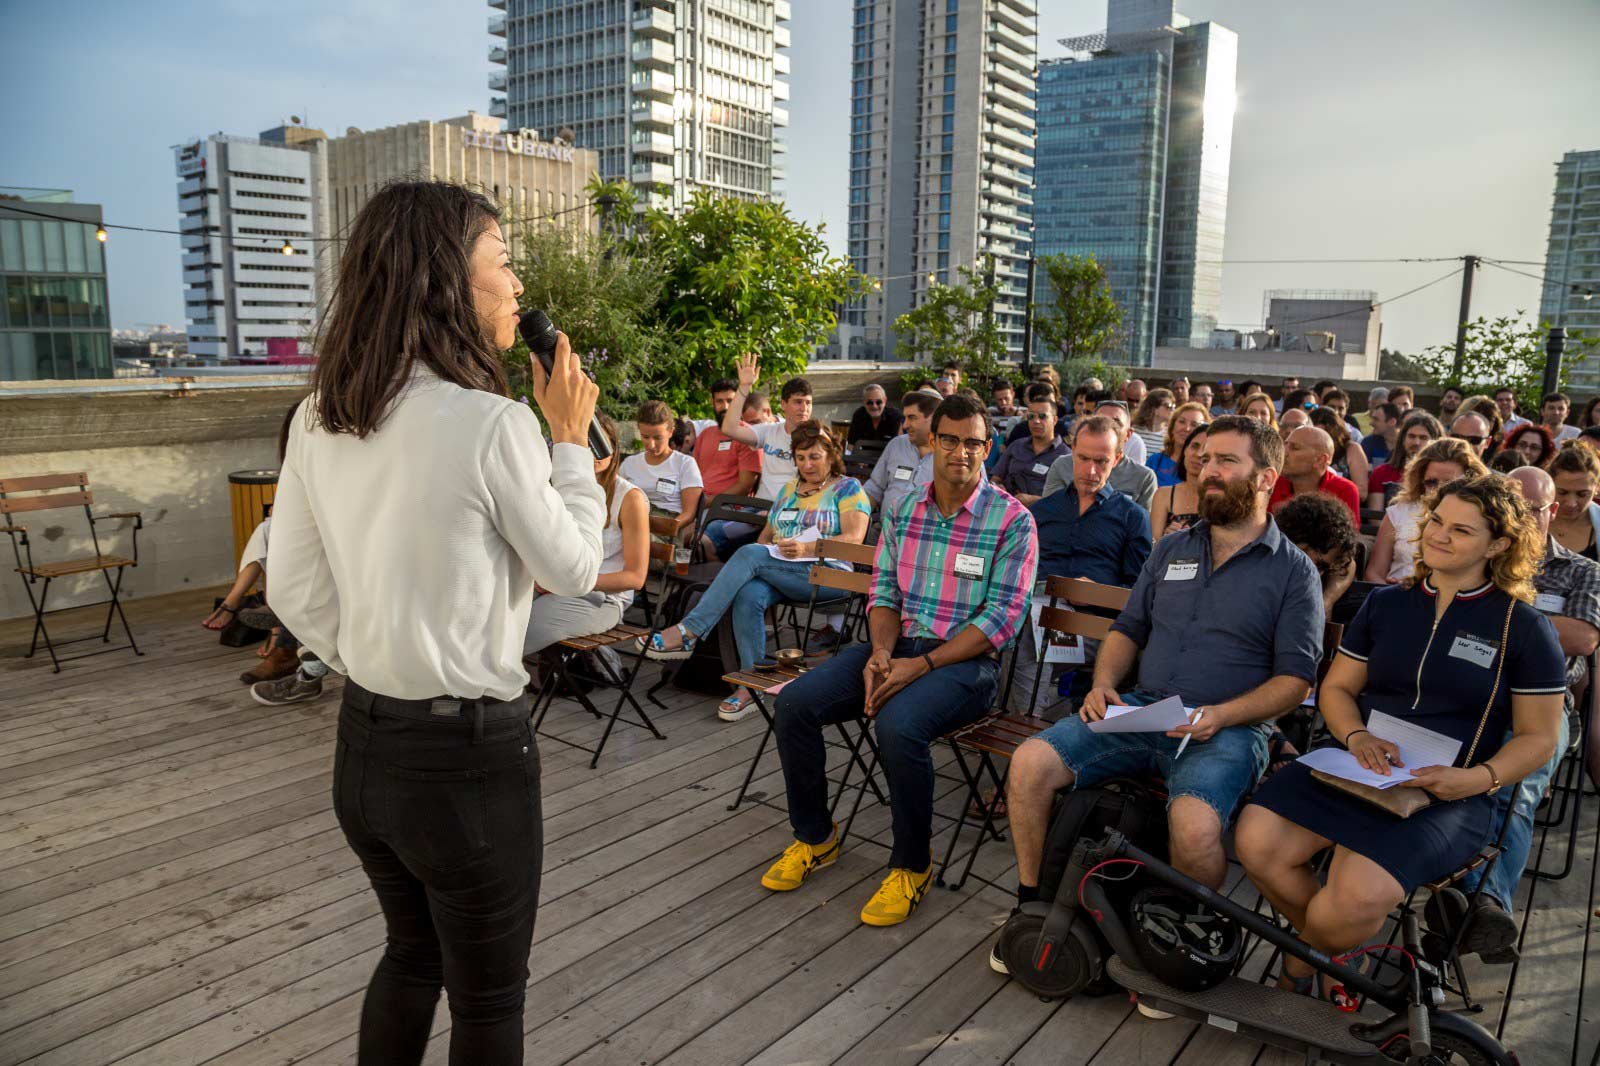 Dana zelicha OWBA founder at a rooftop speaking event in front of a large audience